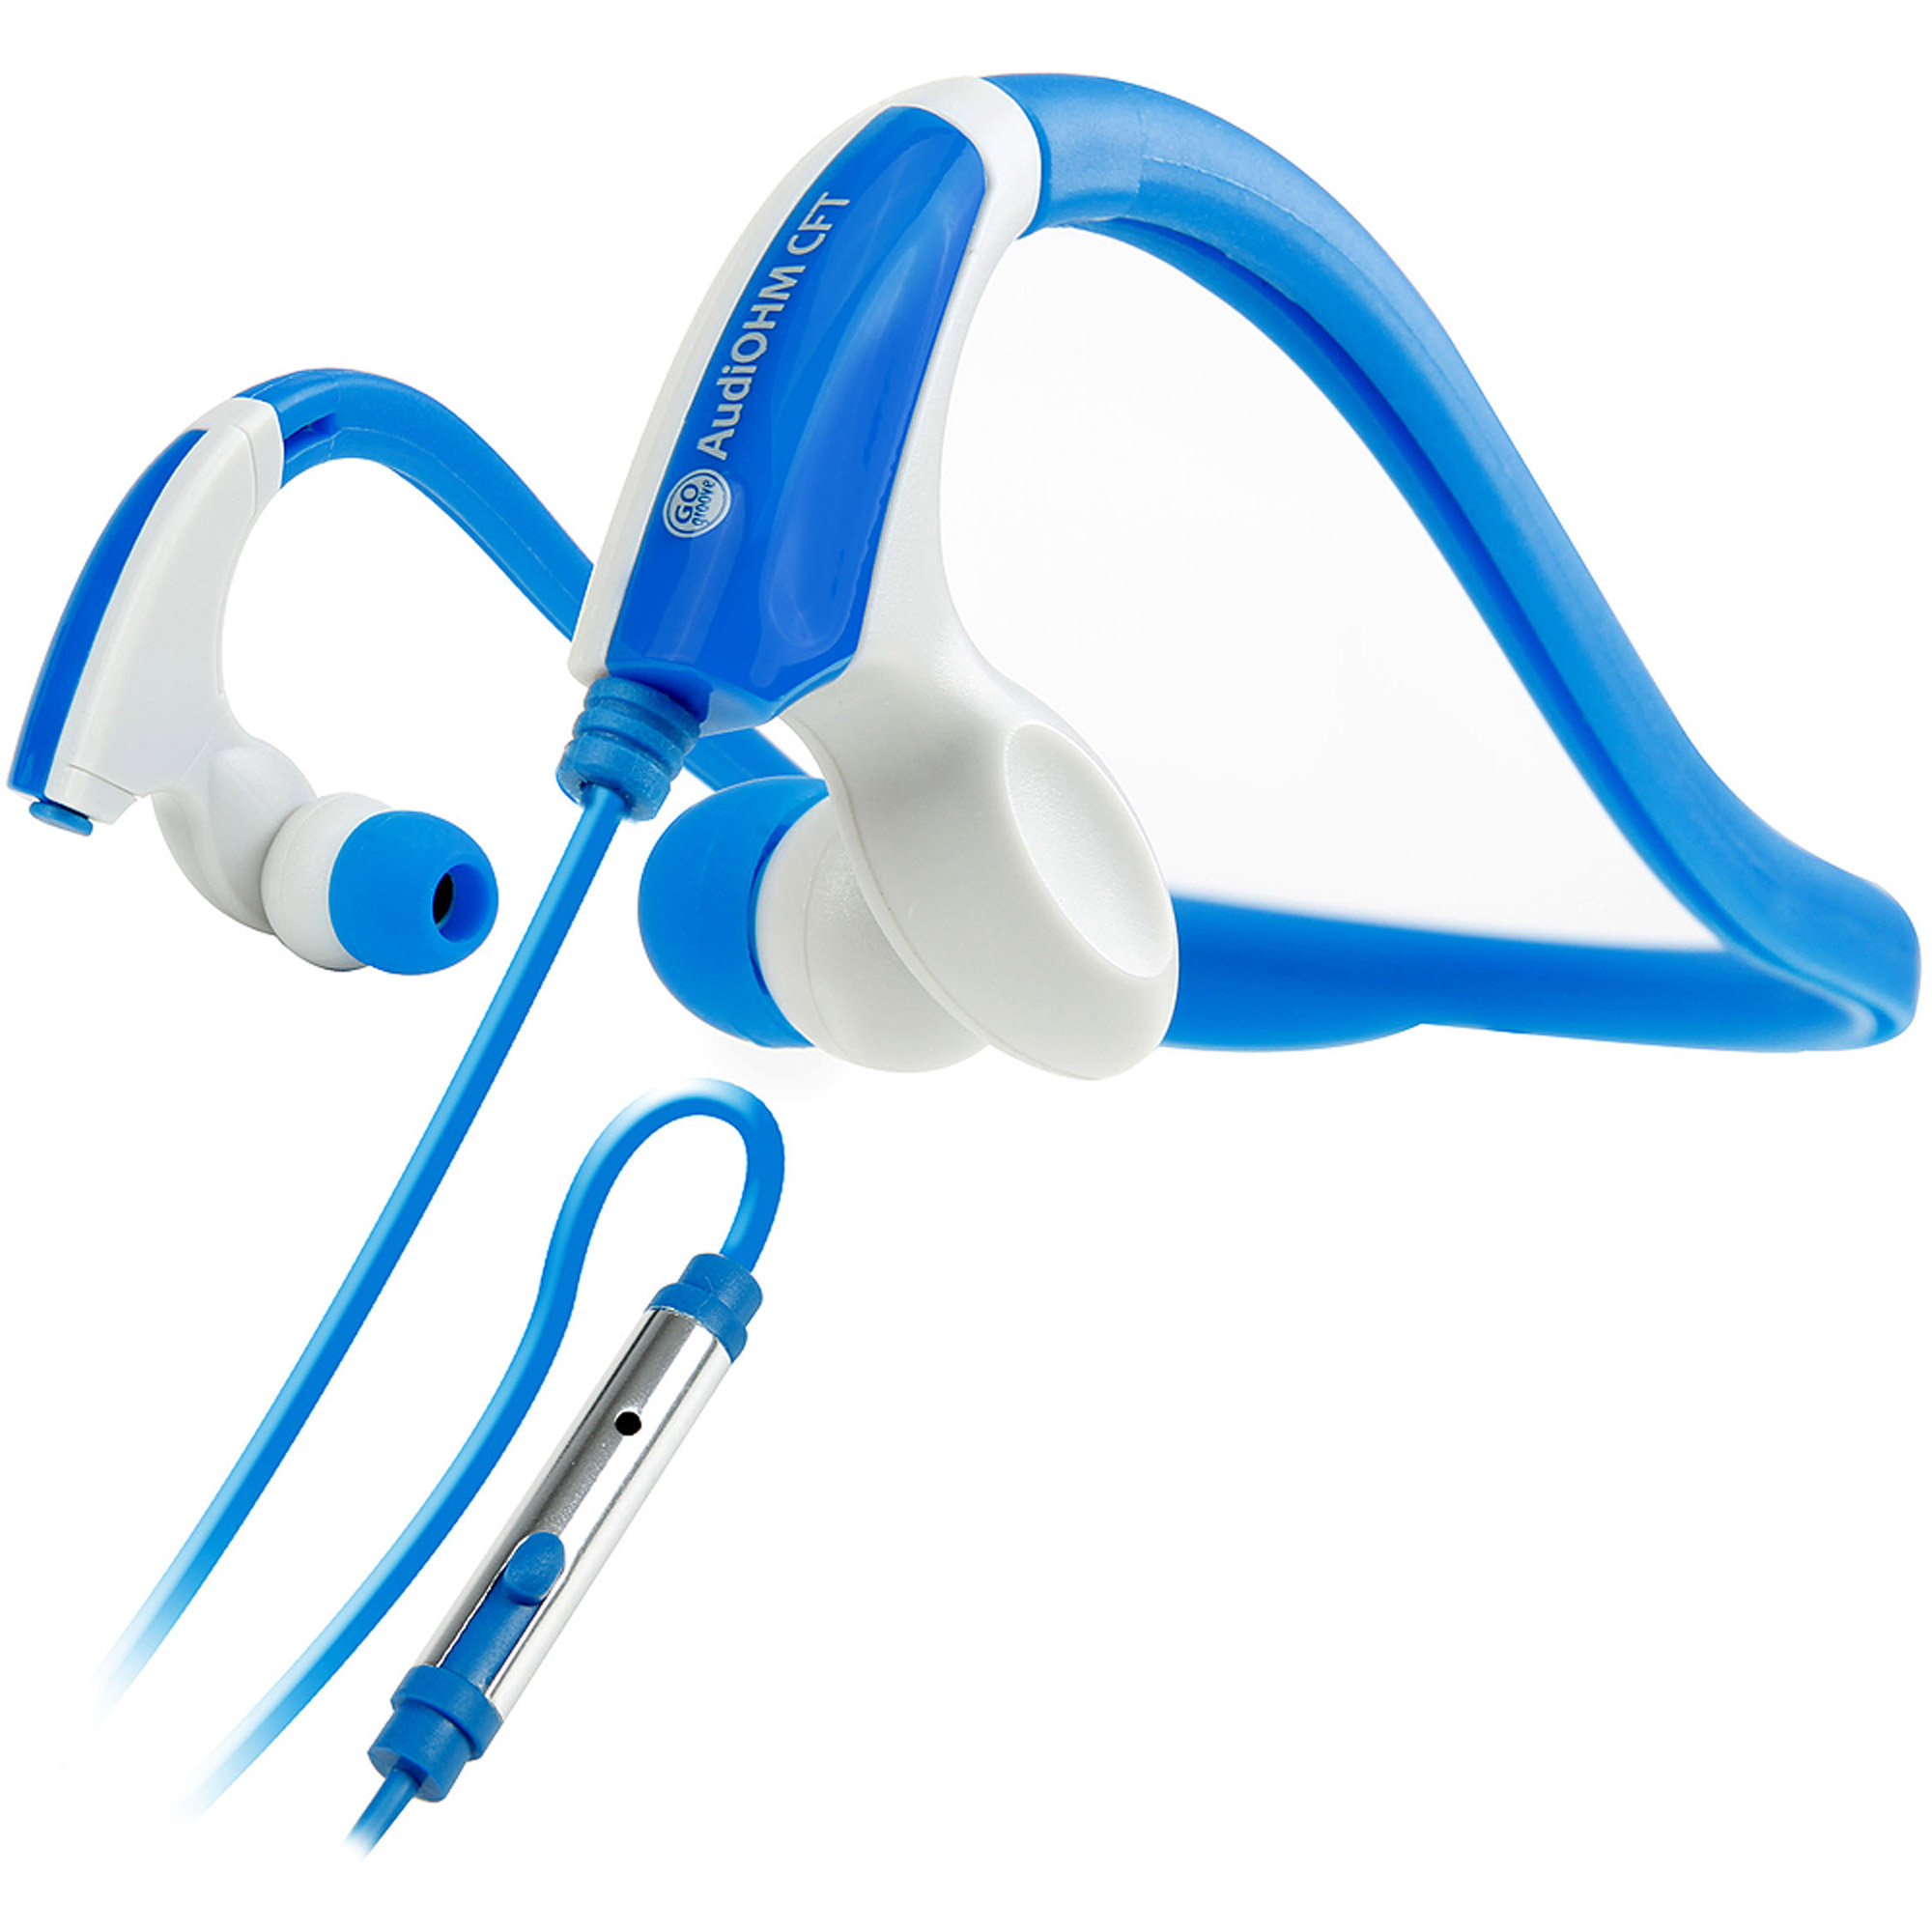 GOgroove CFT Blue Sports Neckband Headphones with Flexible Design and In-Line Microphone